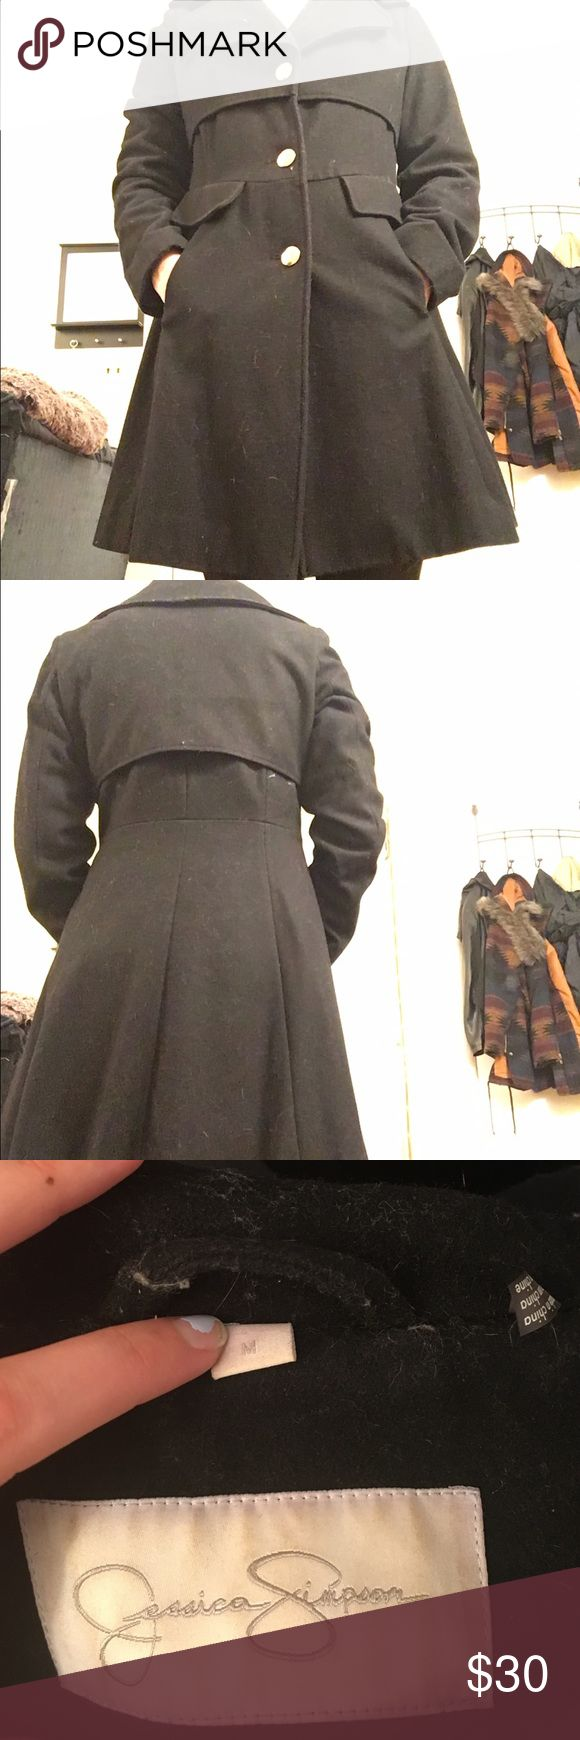 Jessica Simpson Black Dress Coat Beautiful dress coat in size medium. Fits true to size and is super flattering. Gold buttons are fully in-tack! Barely worn and wish I was able to wear it more!! 55% Wool. Jessica Simpson Jackets & Coats Pea Coats